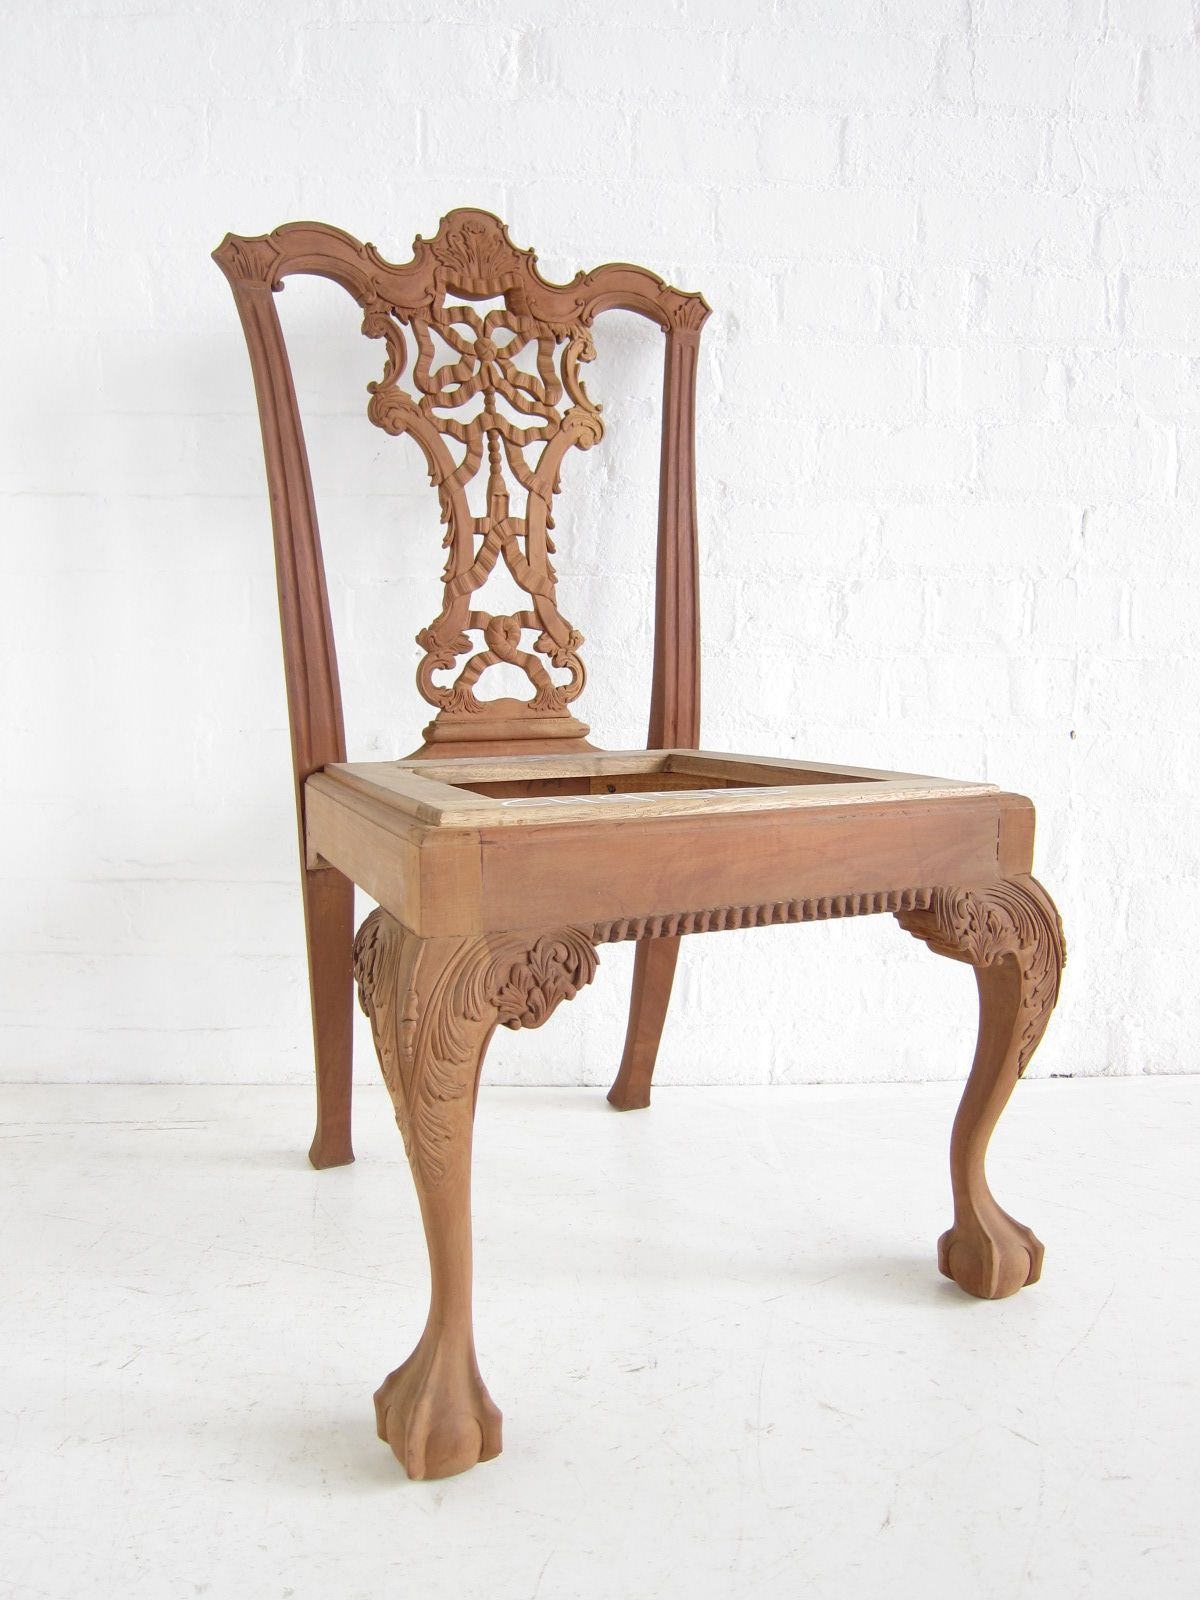 Chippendale dining chair with ball and claw feet